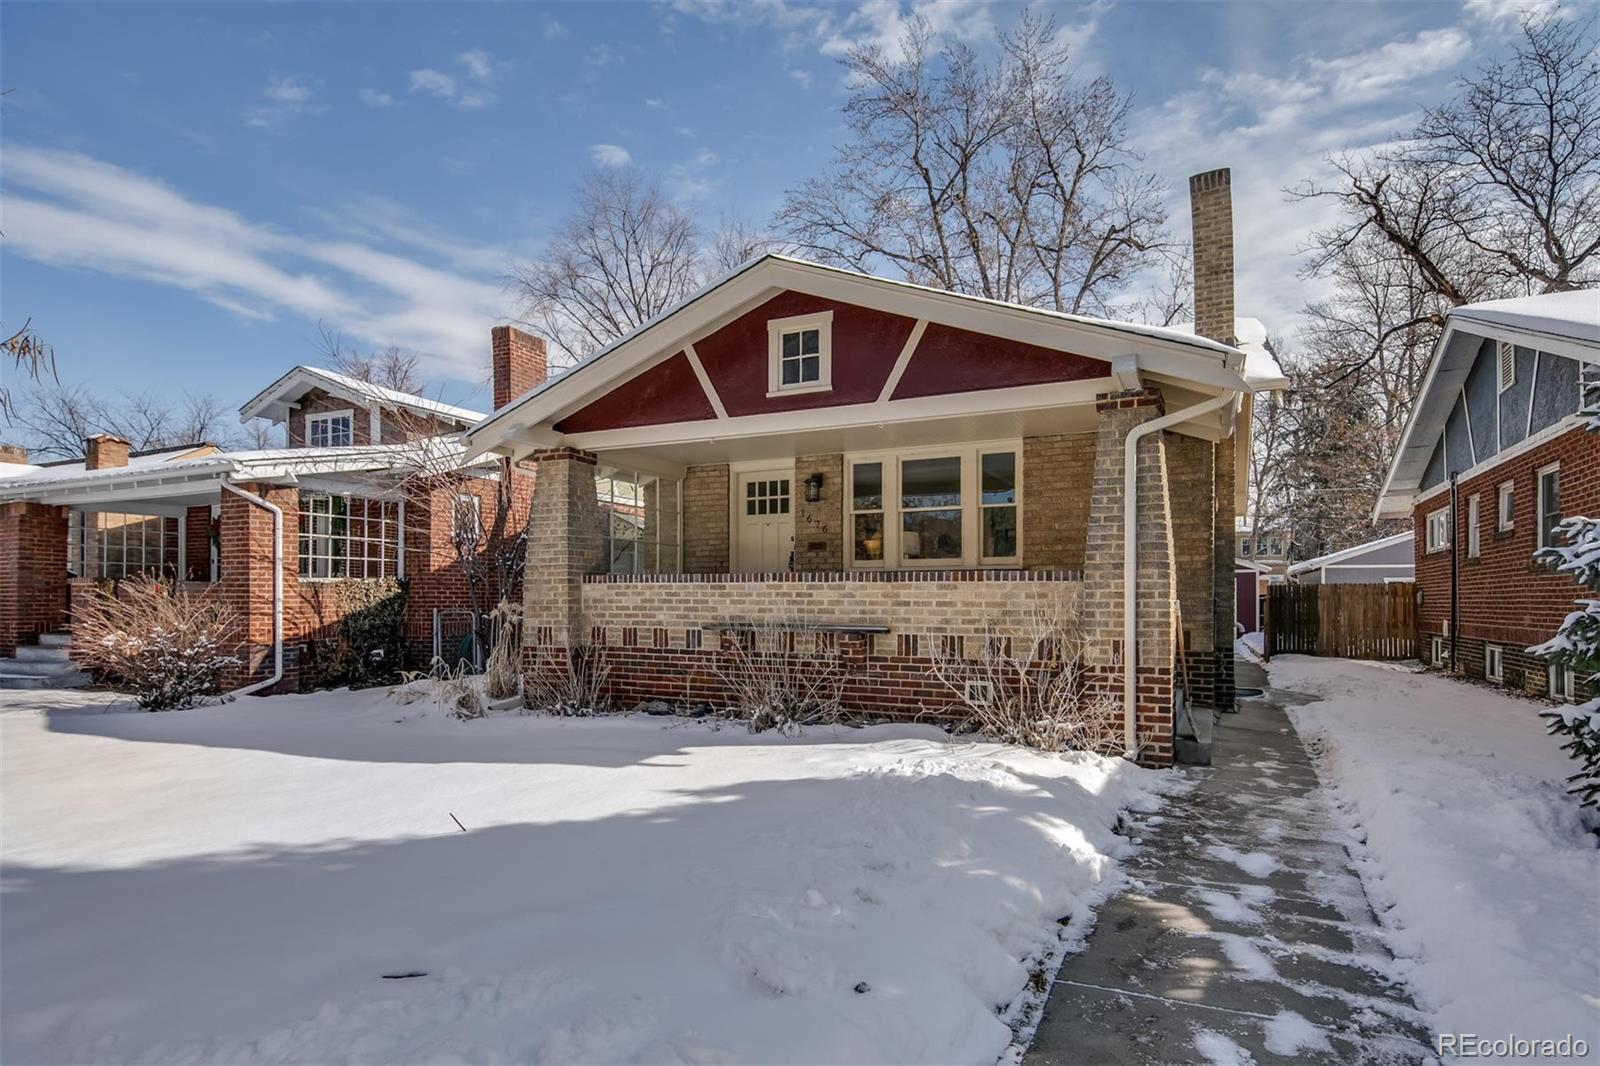 MLS# 5026749 - 3 - 1676 Garfield Street, Denver, CO 80206